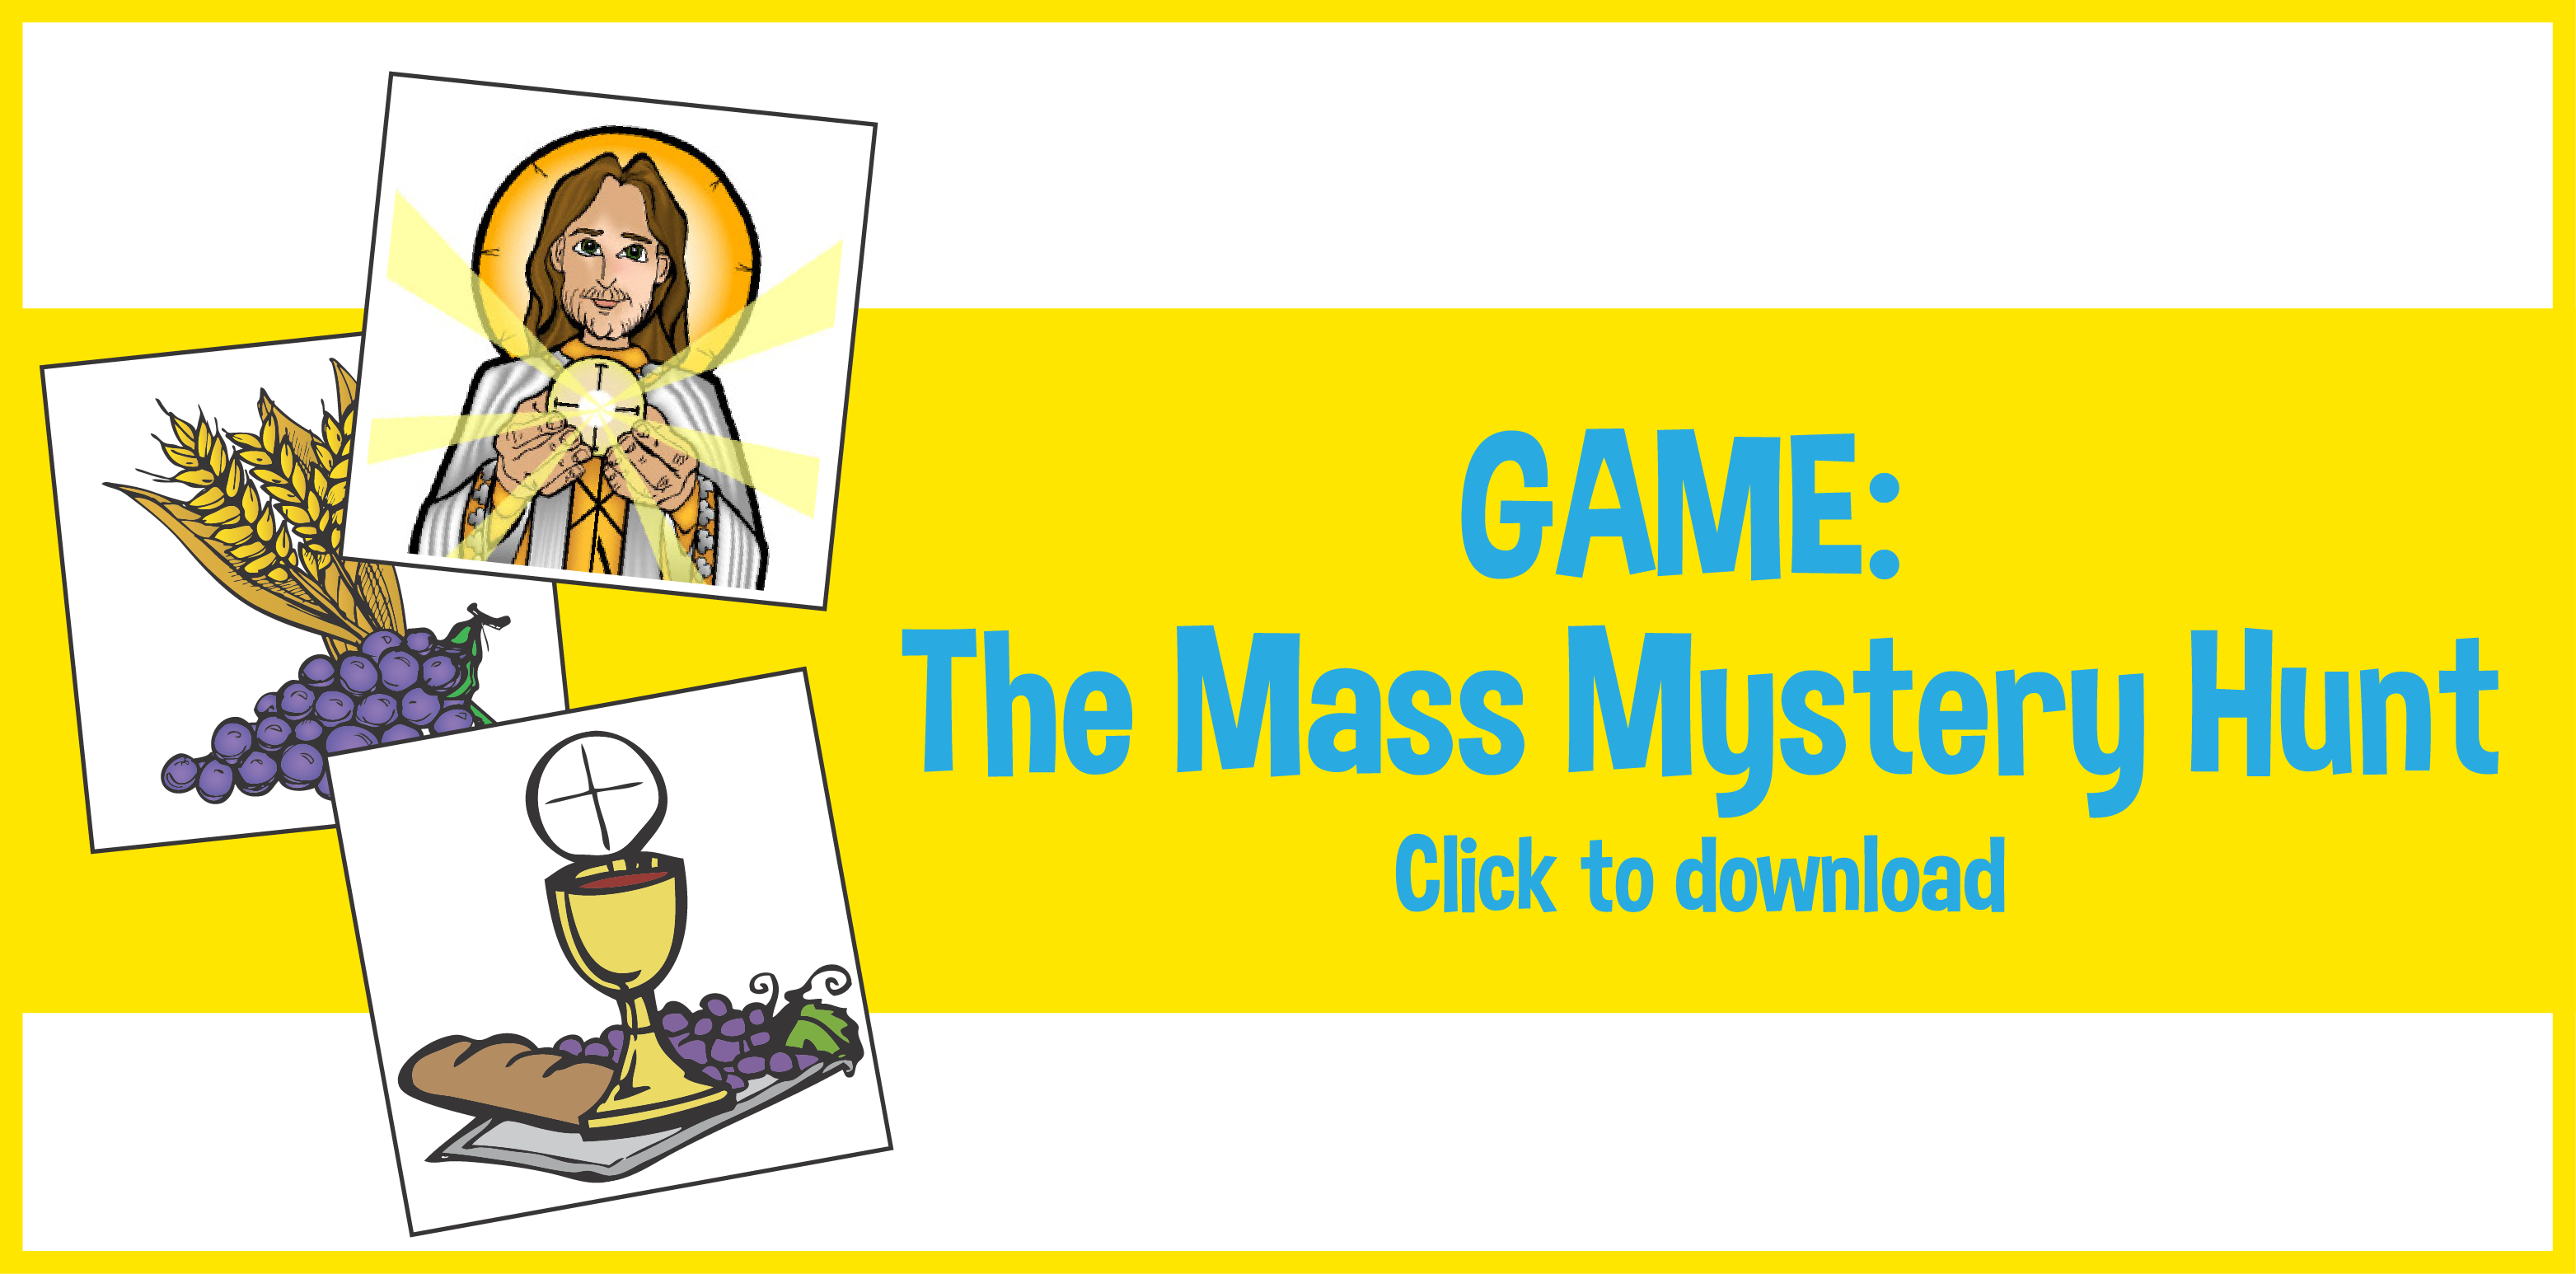 The Mass Mystery Hunt